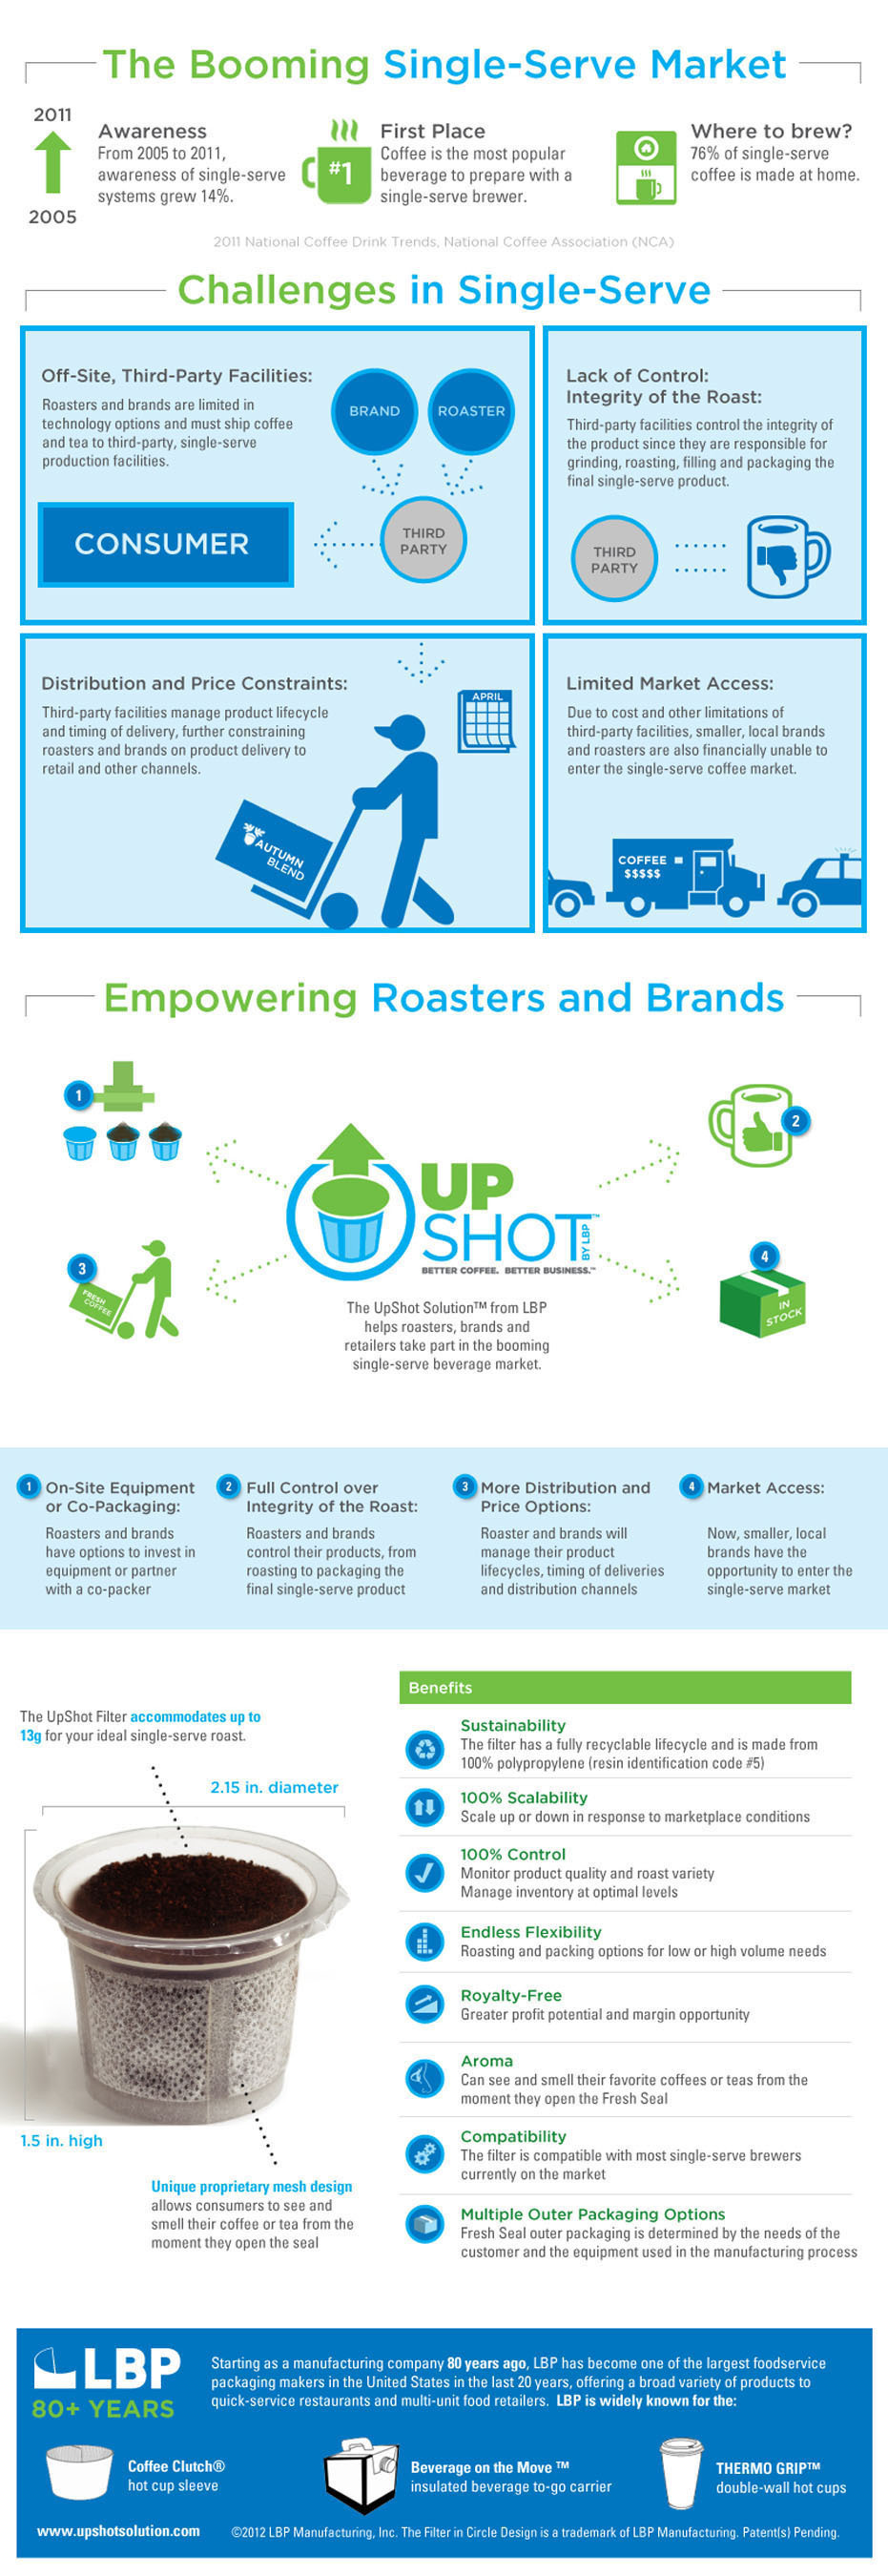 The UpShot Solution from LBP helps roasters, brands and retailers take part in the booming single-serve ...